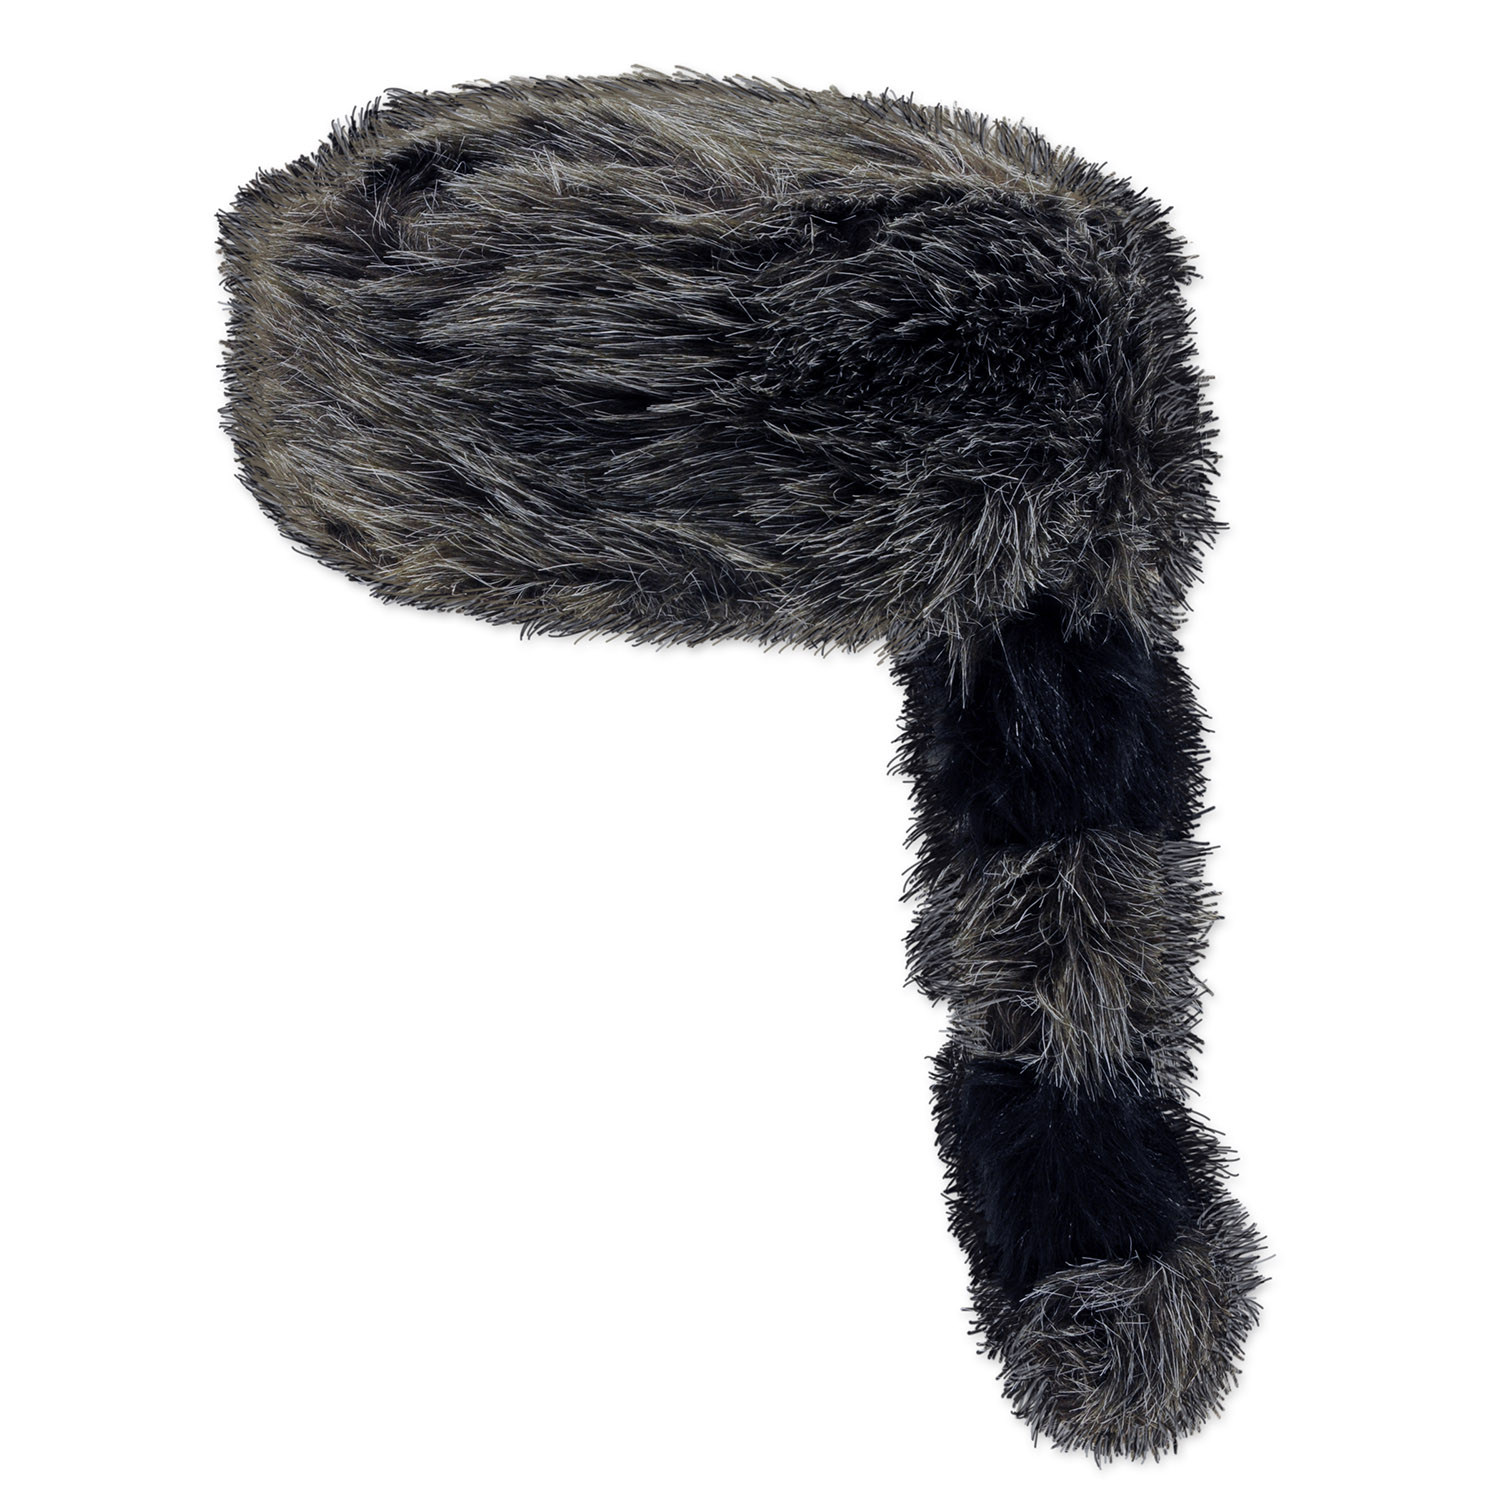 coonskin animal skin hat with tail